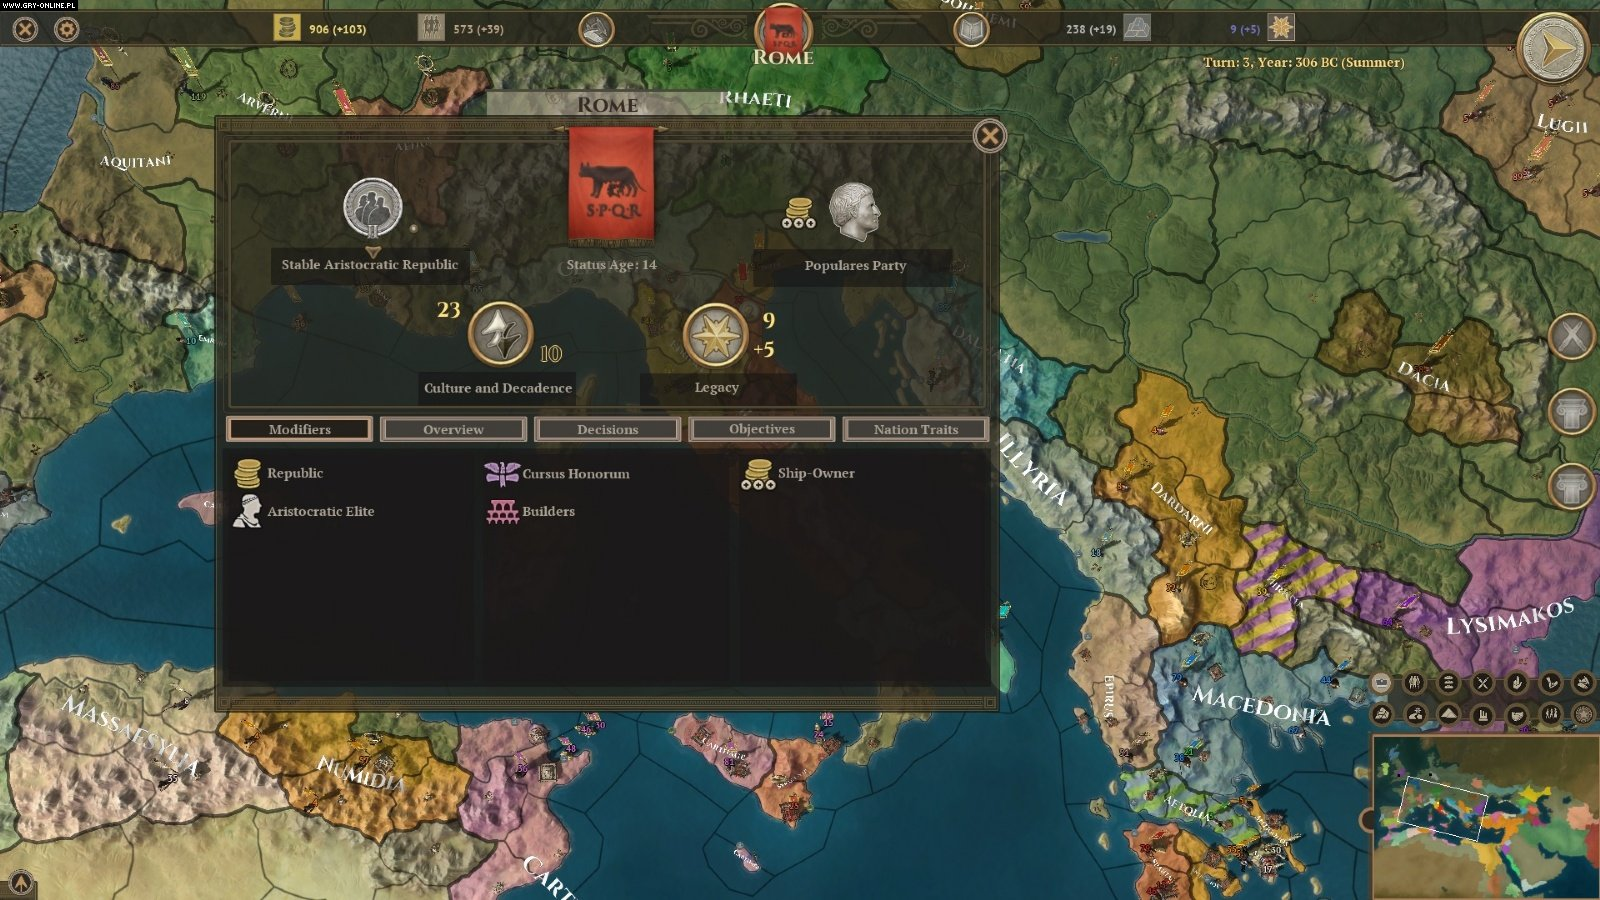 Field of Glory: Empires PC Games Image 3/6, AGEod, Matrix Games/Slitherine